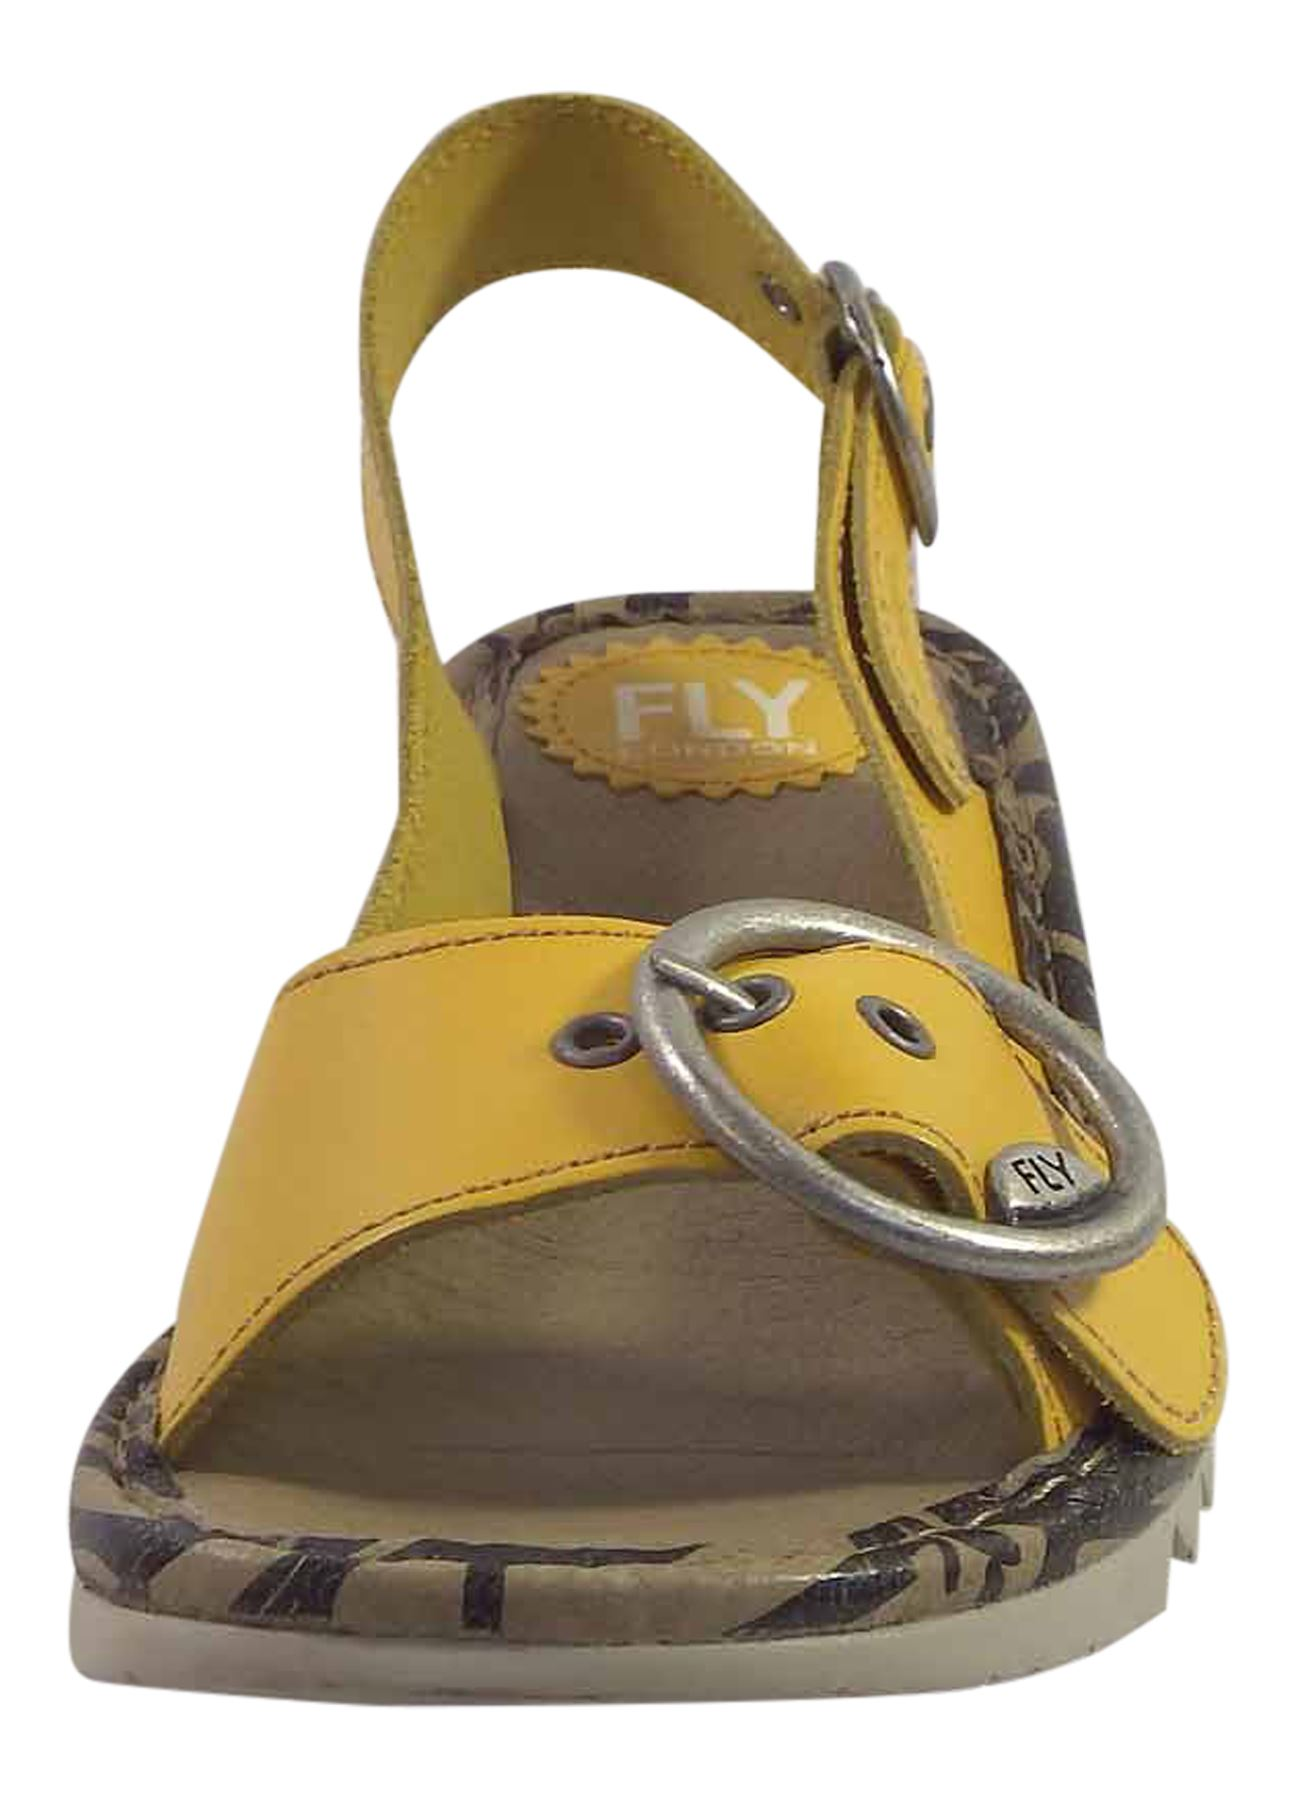 Fly-London-Ladies-TRAM723FLY-Lo-Wedge-Slingback-Summer-Sandals-Leather thumbnail 48